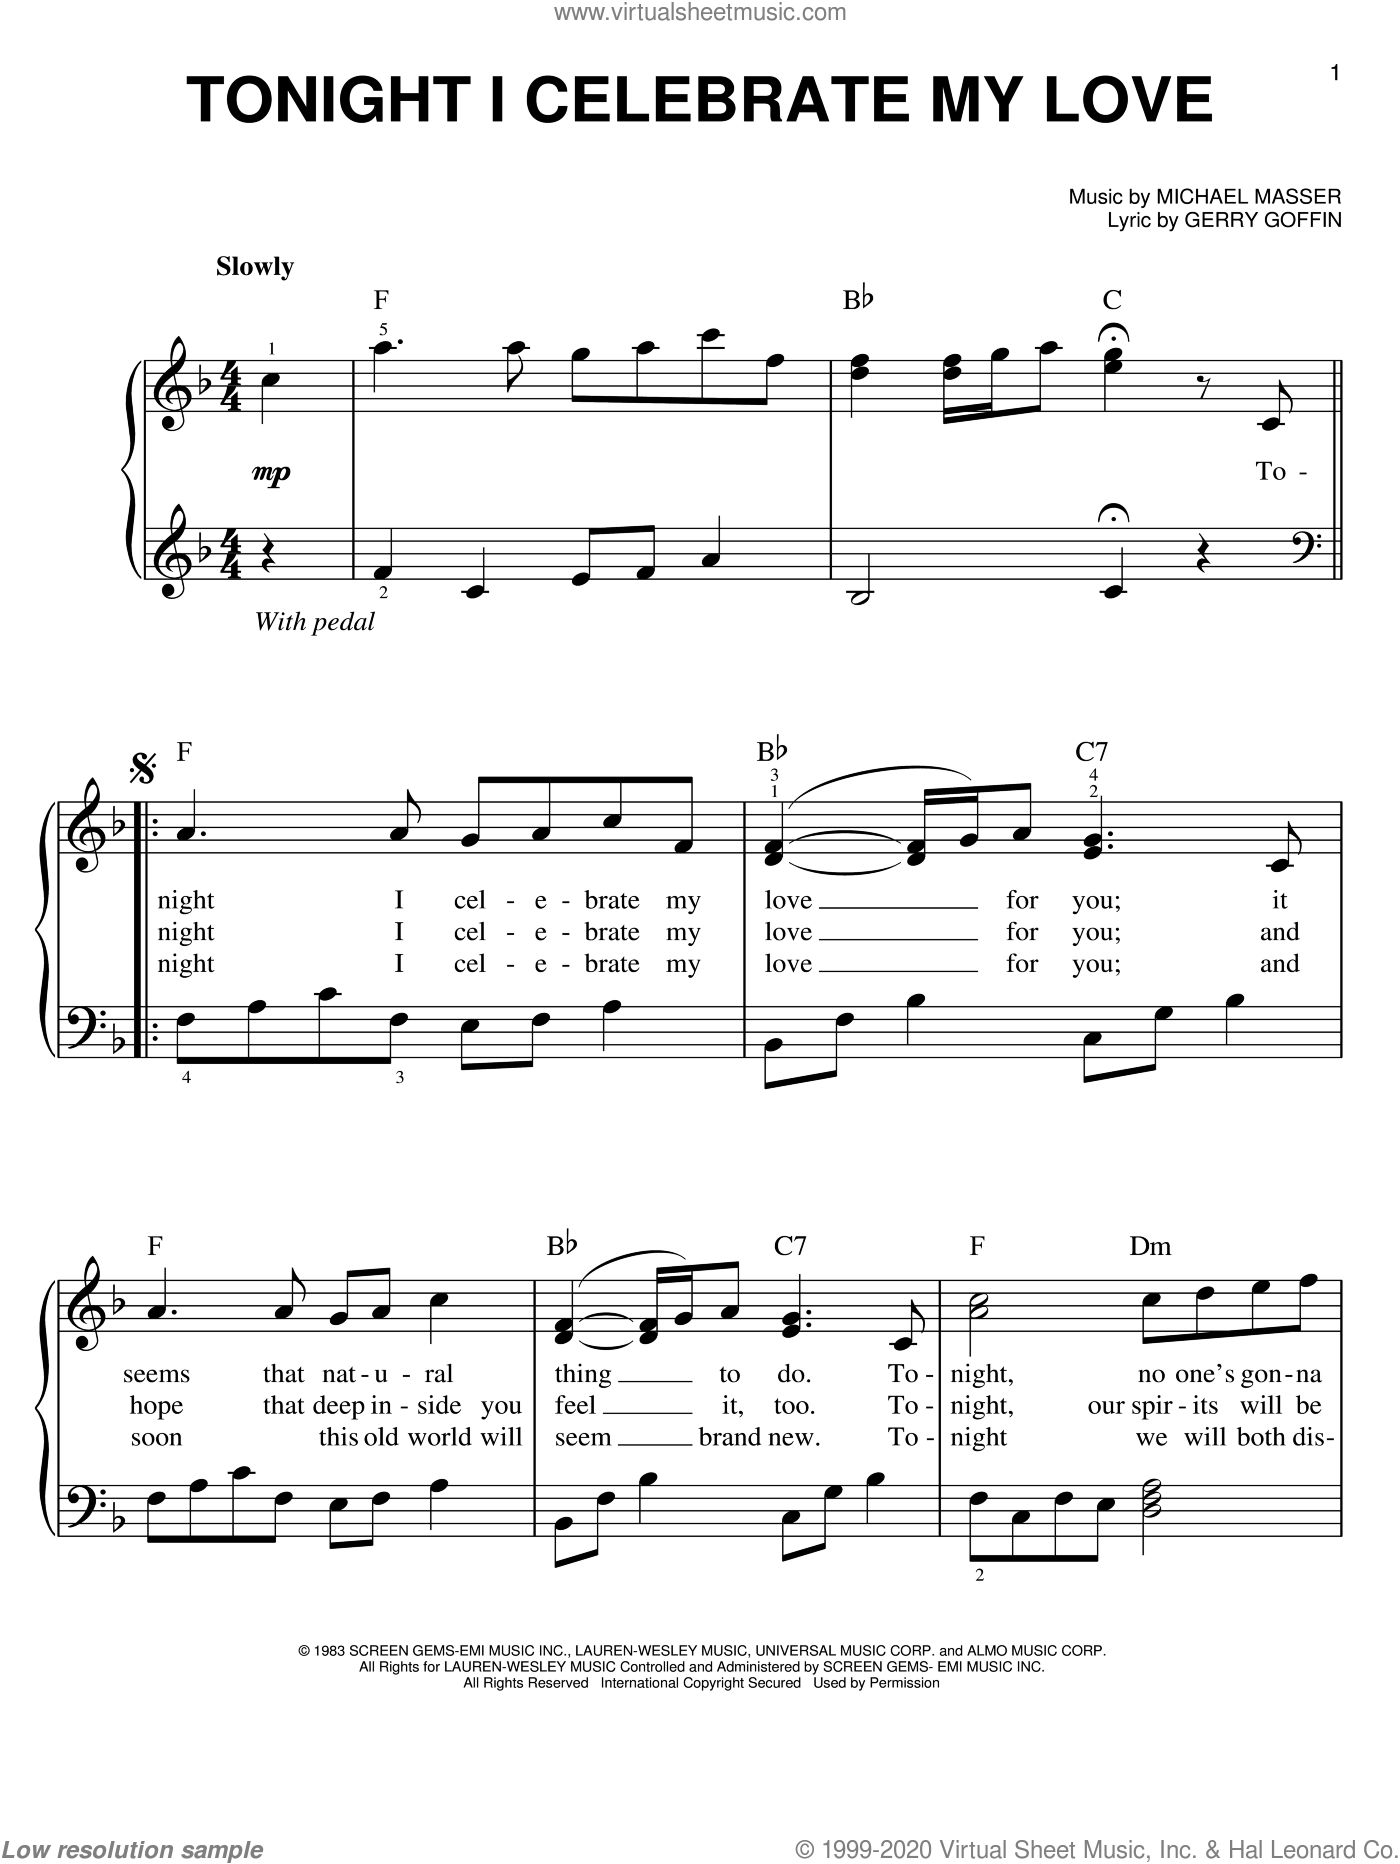 Tonight, I Celebrate My Love sheet music for piano solo by Roberta Flack, Gerry Goffin and Michael Masser. Score Image Preview.